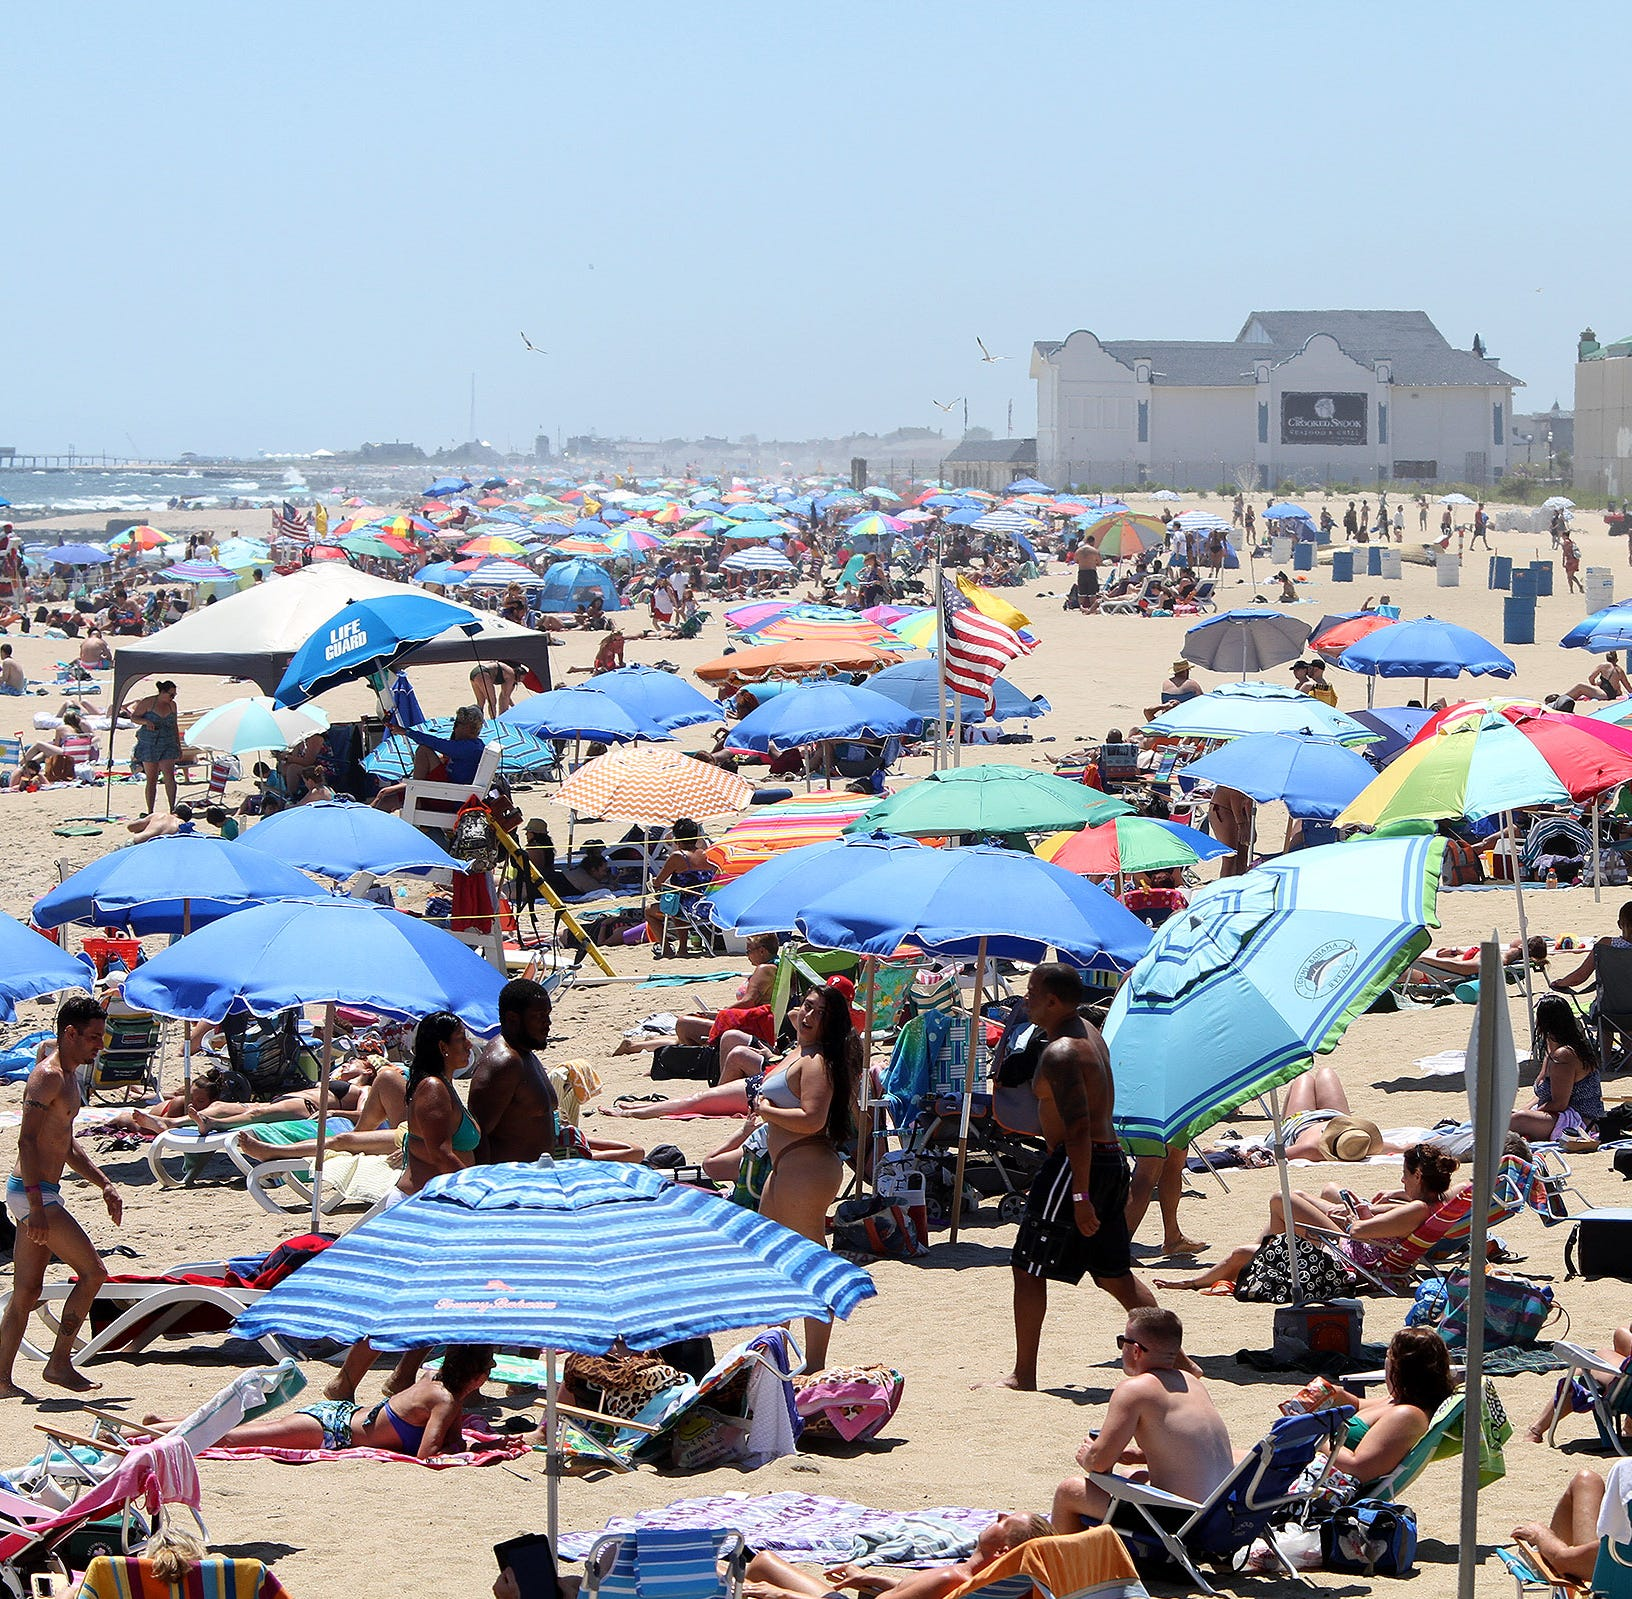 NJ Weather forecast: Summer should be hotter than usual, expect more people at Shore